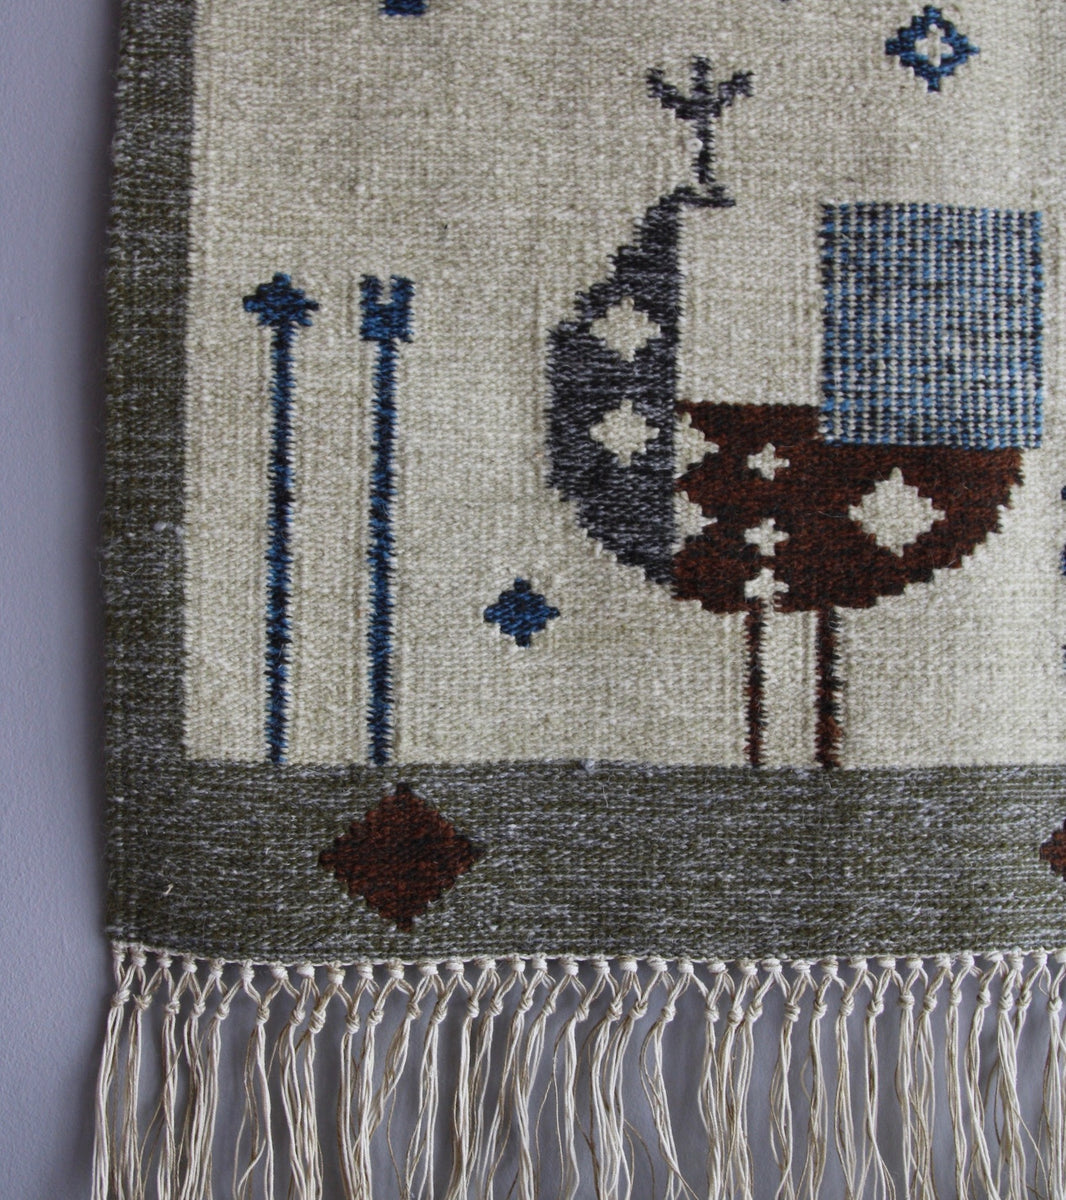 textiles swedish woman crafts skills scandinavian modern made by hand